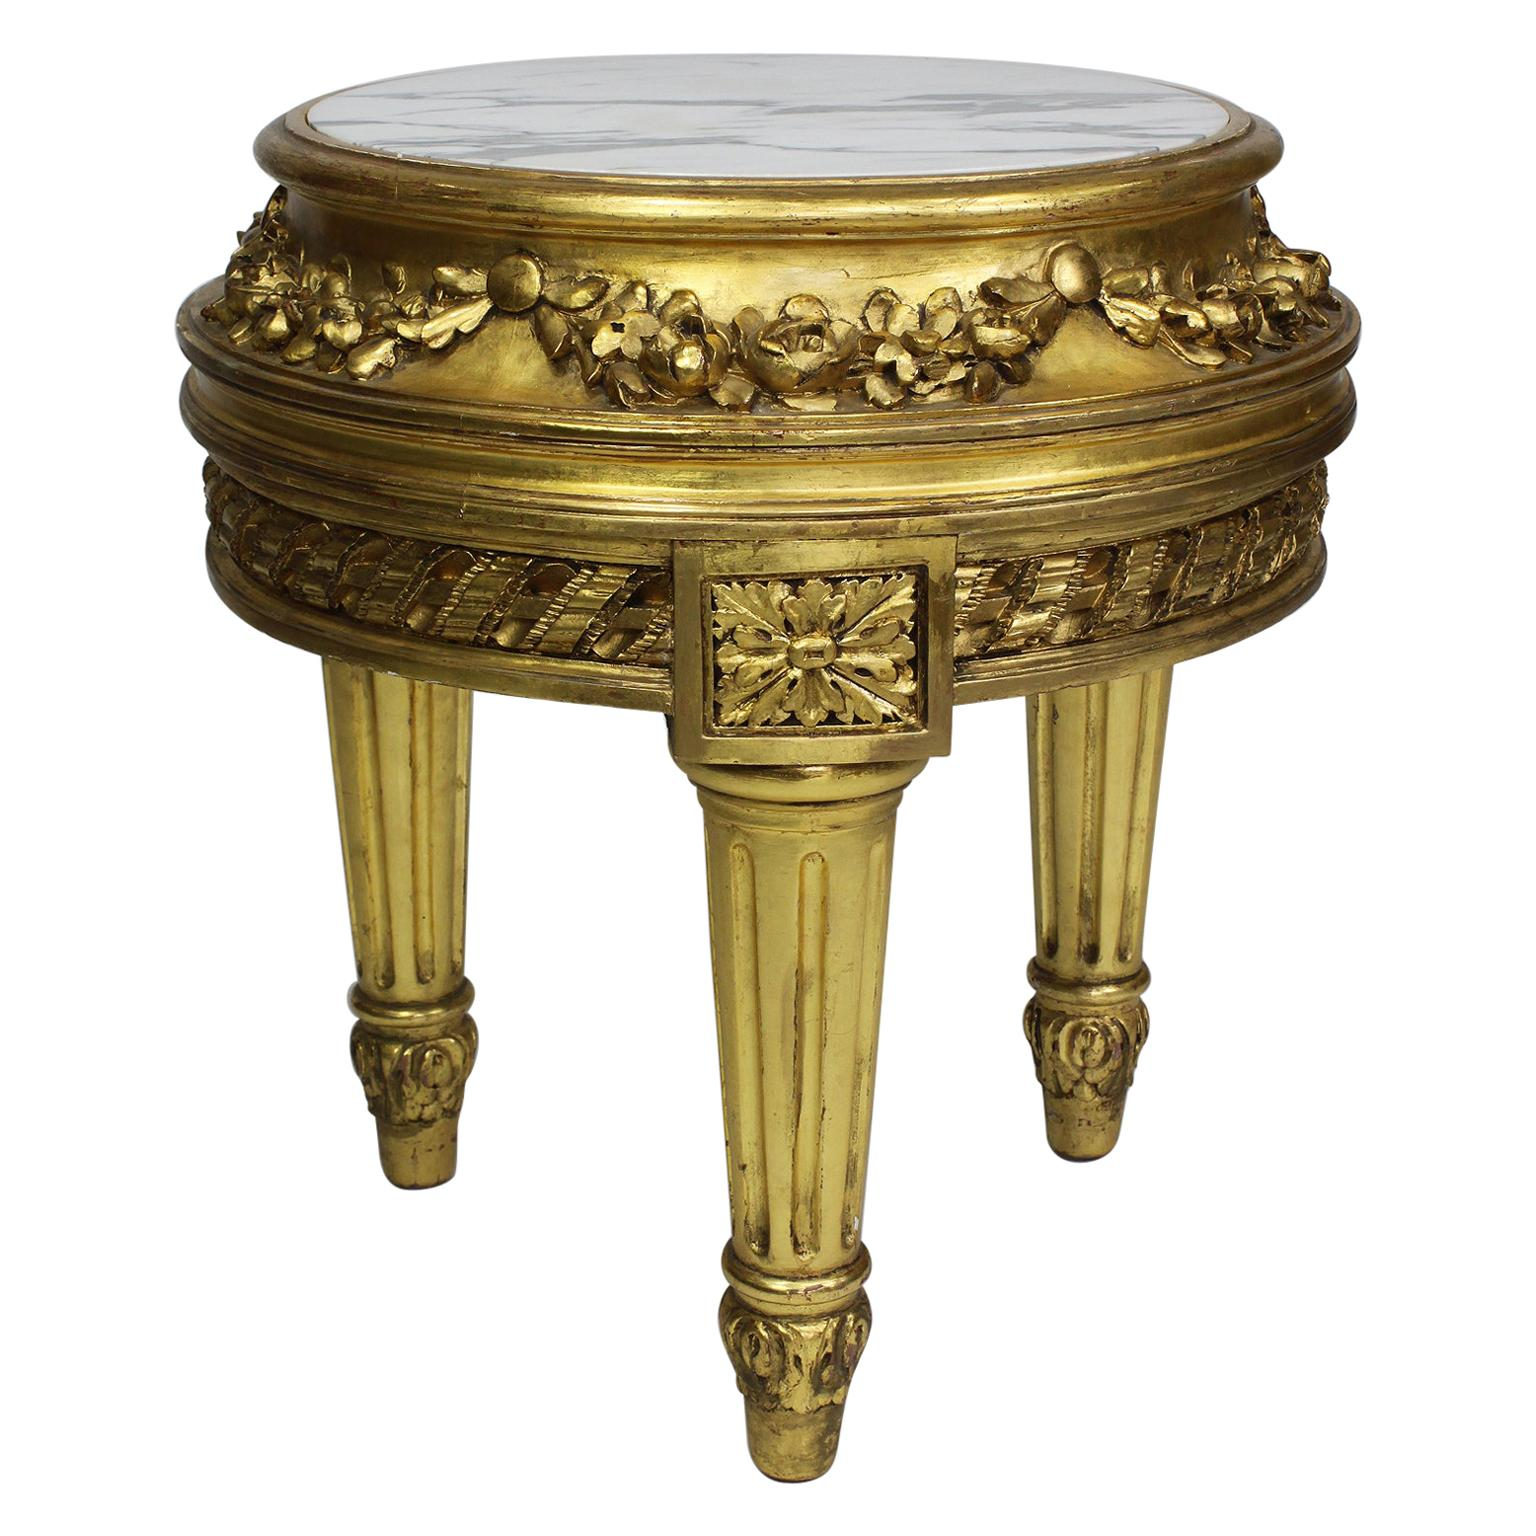 Belle Époque Louis XVI Style Giltwood Carved Pedestal Stand with Marble Top